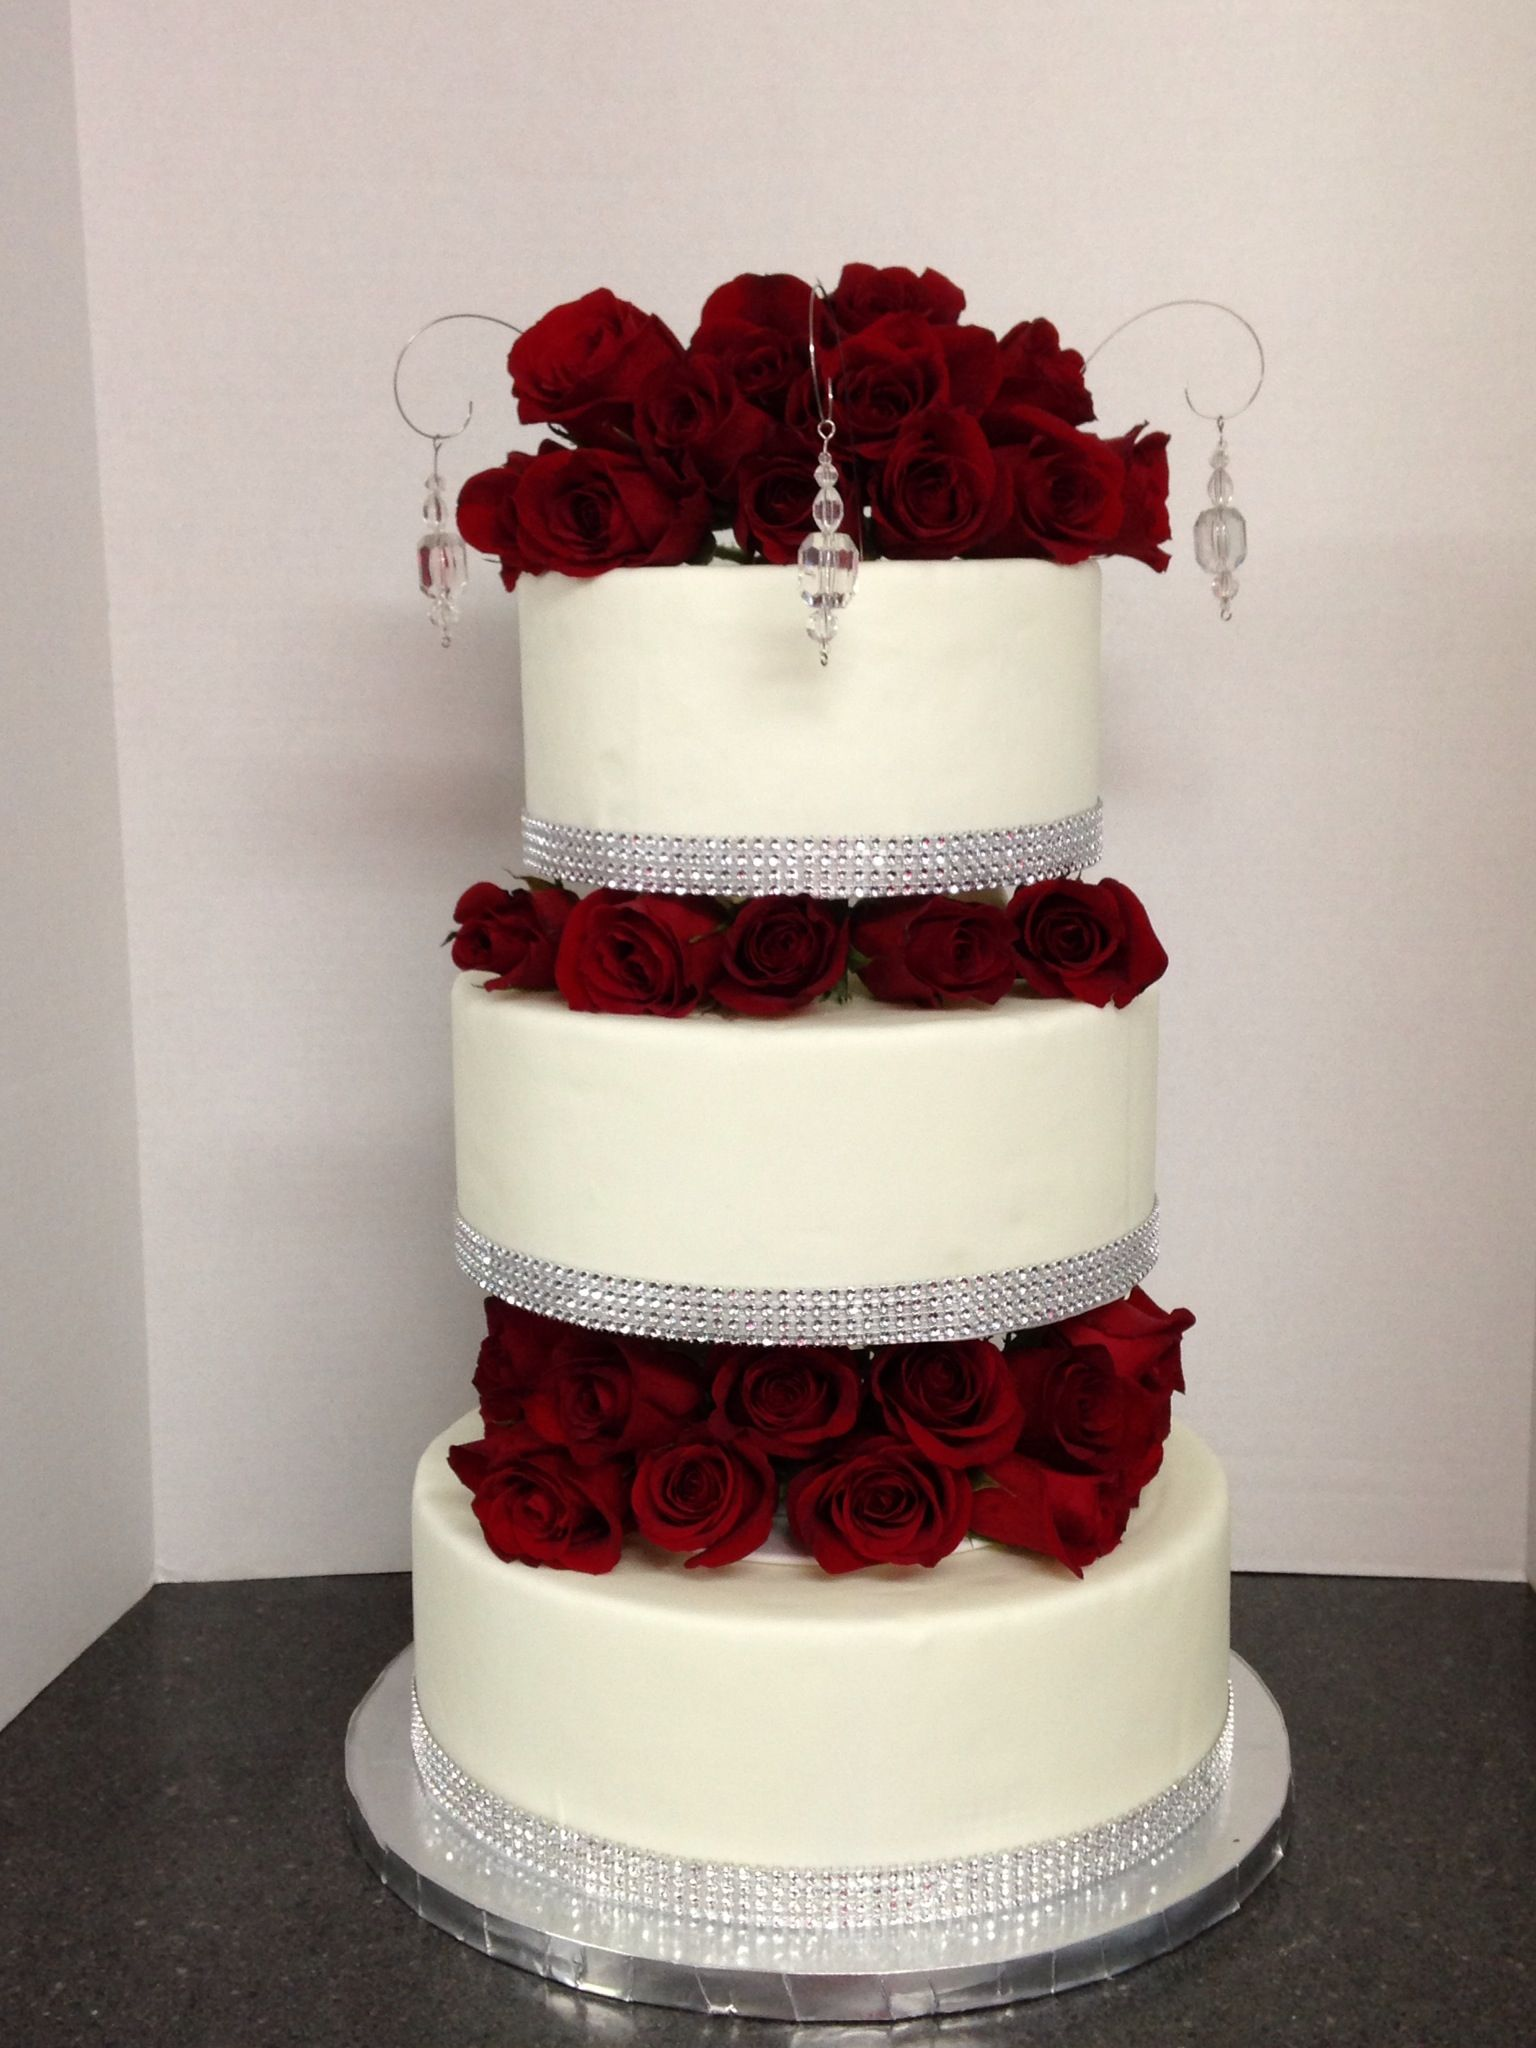 wedding cakes with red roses and bling classic roses amp bling wedding cake shellscakes 26098